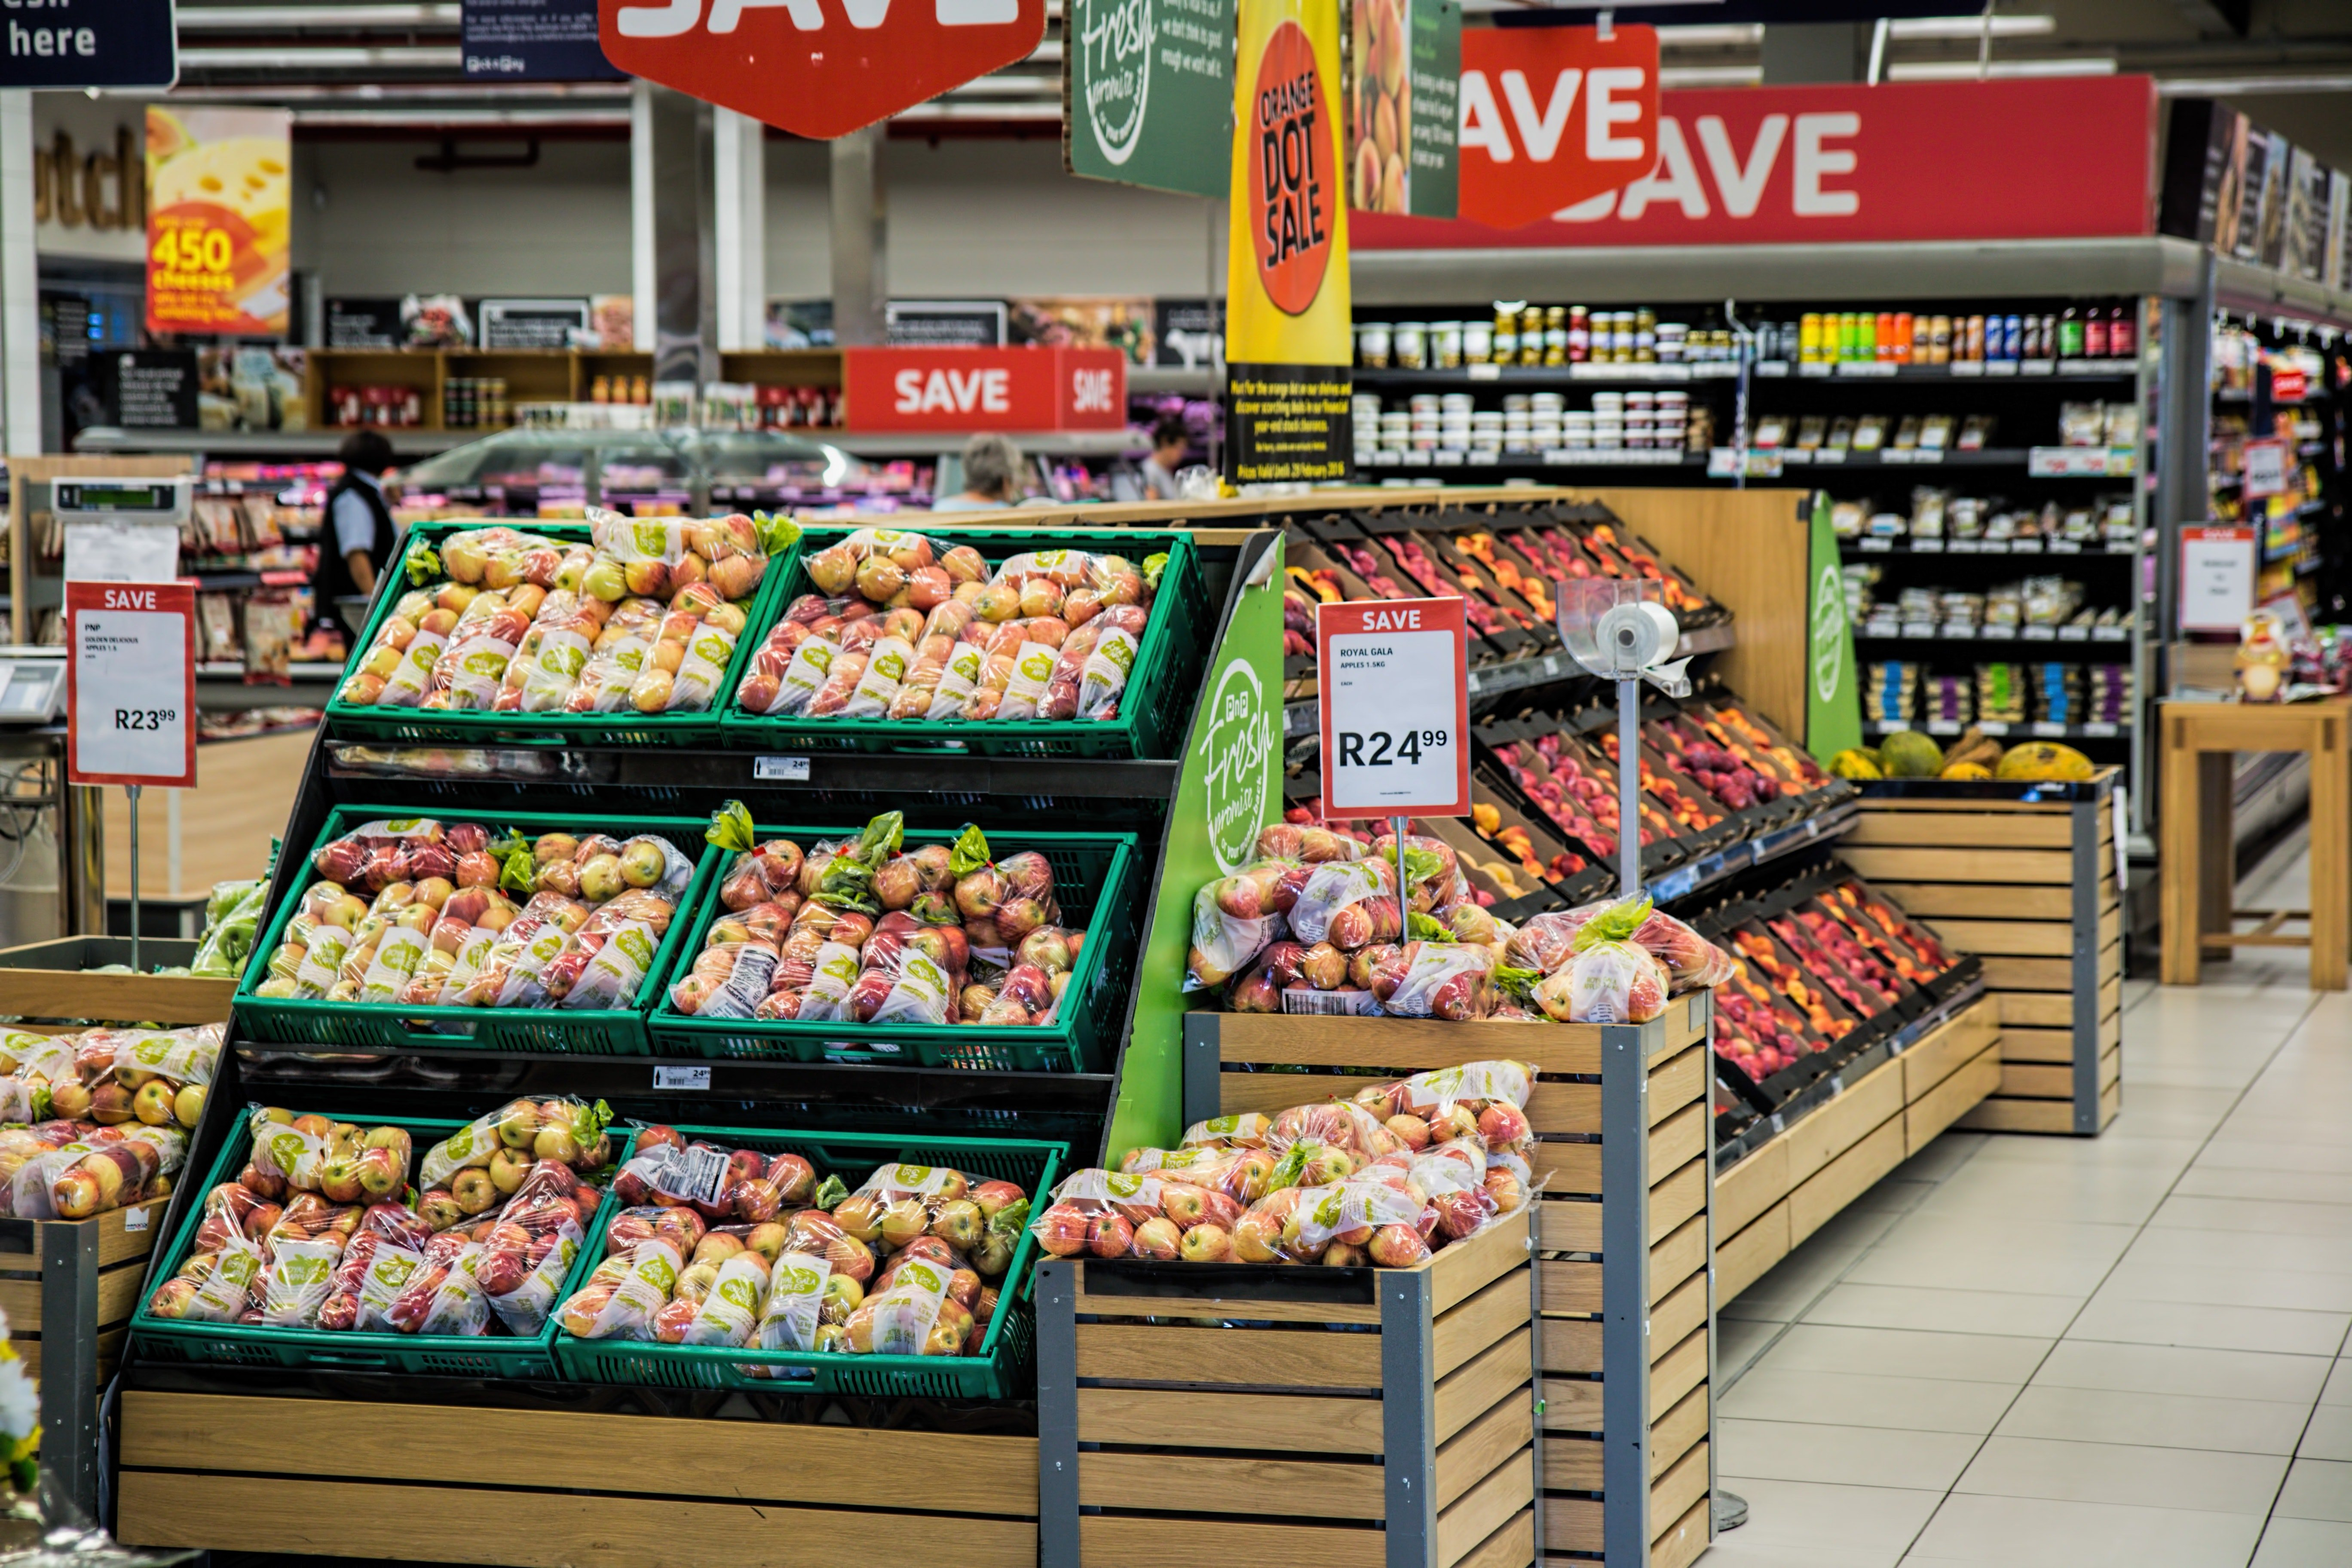 A grocery store   Photo: Pexels